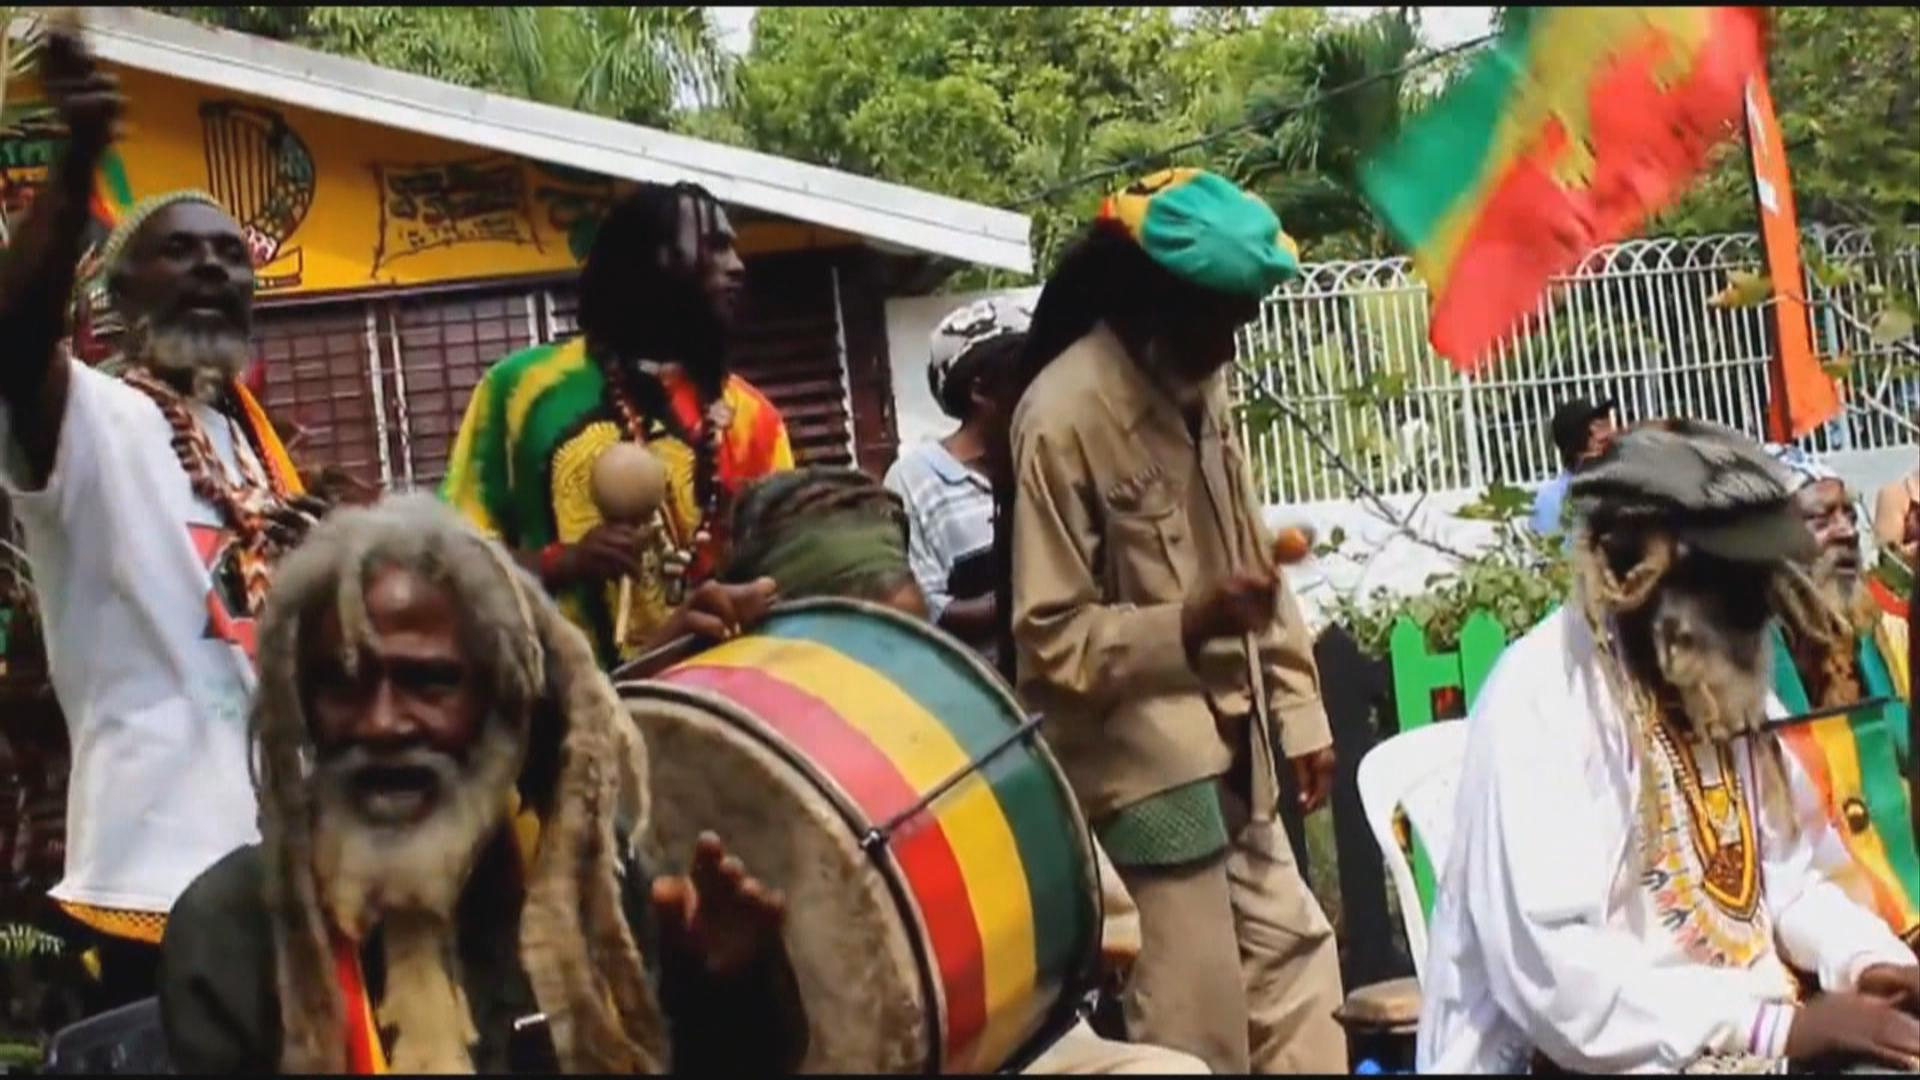 Chinese Rastafarian Faces of Africa...